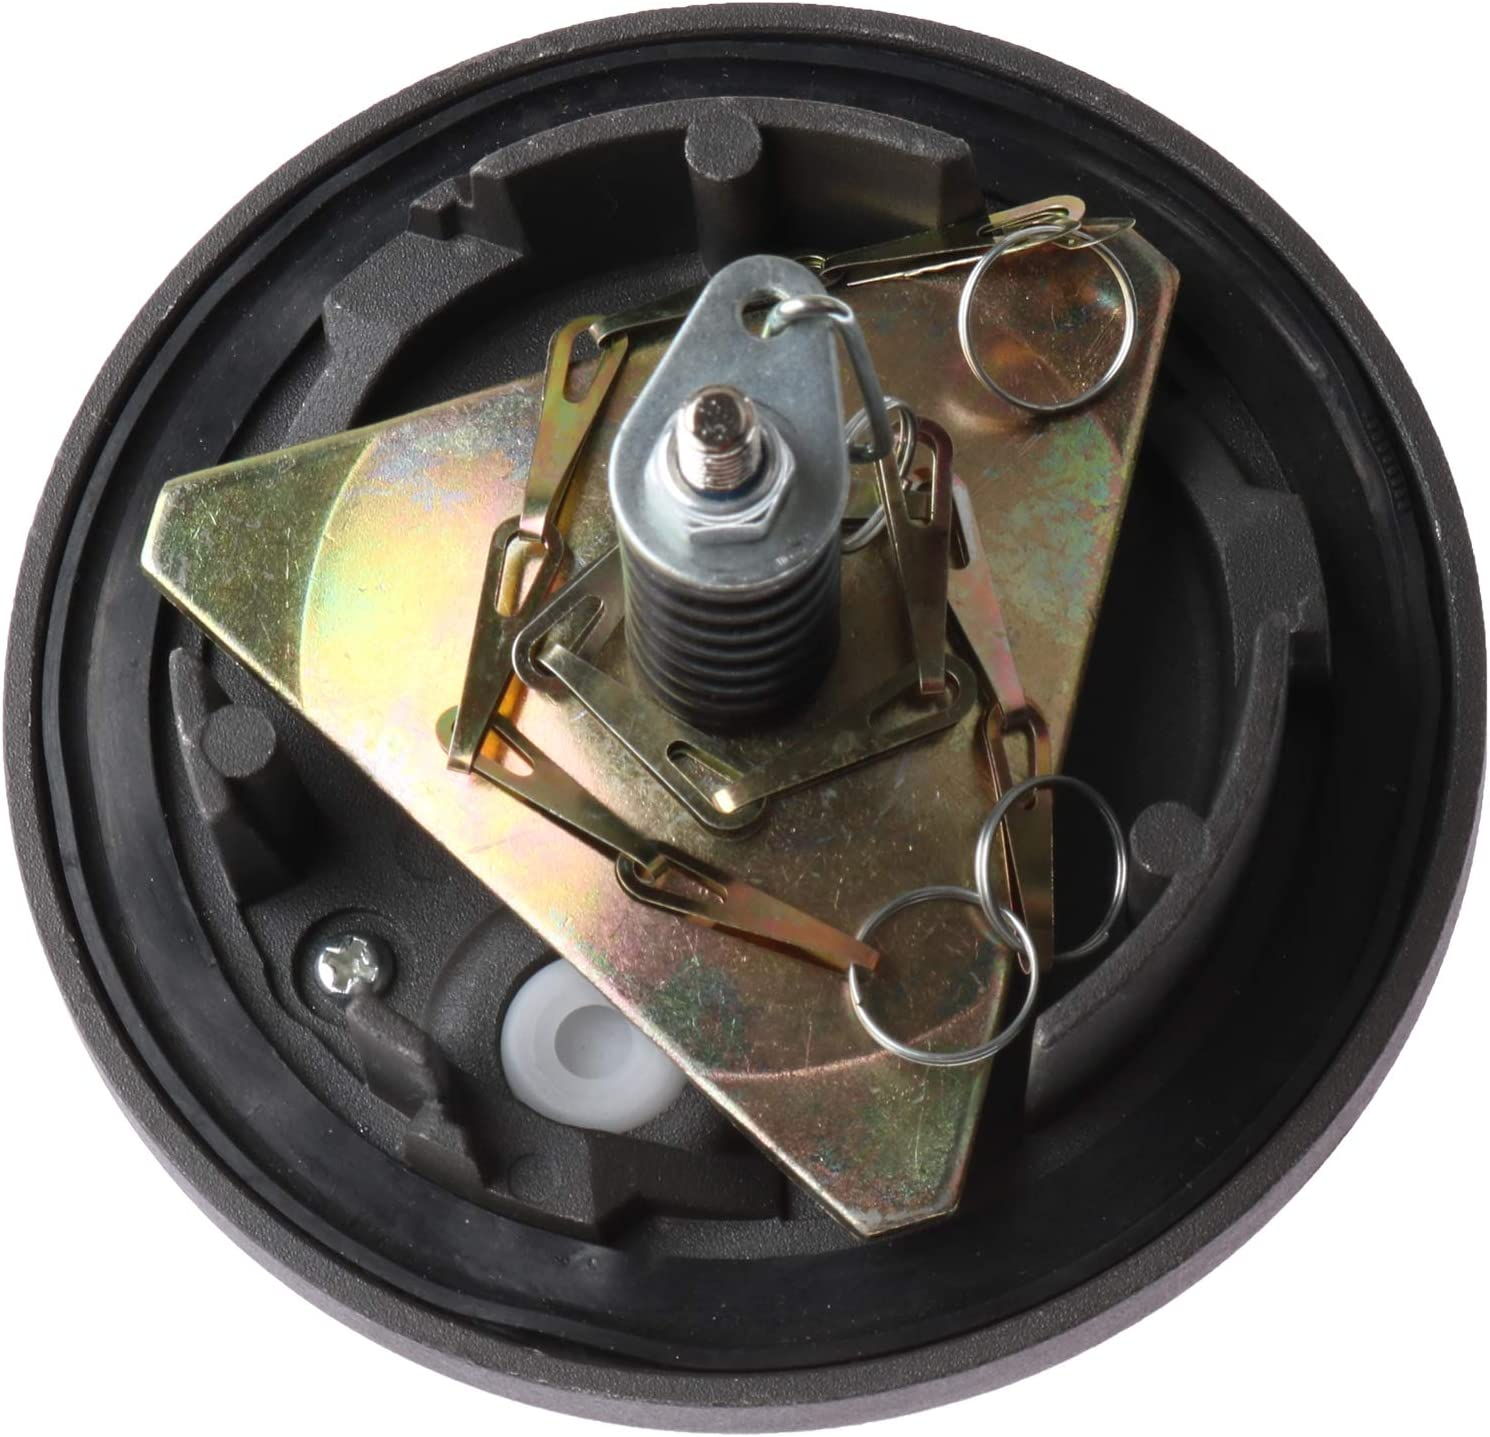 Friday Part Filler Cap 11118857 VOE11118857 for Volvo A20C A25C A25D A25E A25F A25G A30C A30D A30E A30F A30G A35C A35D A35E A35F A35G A40 A40D A40E A40F A40G A45G A60H L60F L70F L90F L90G T450D